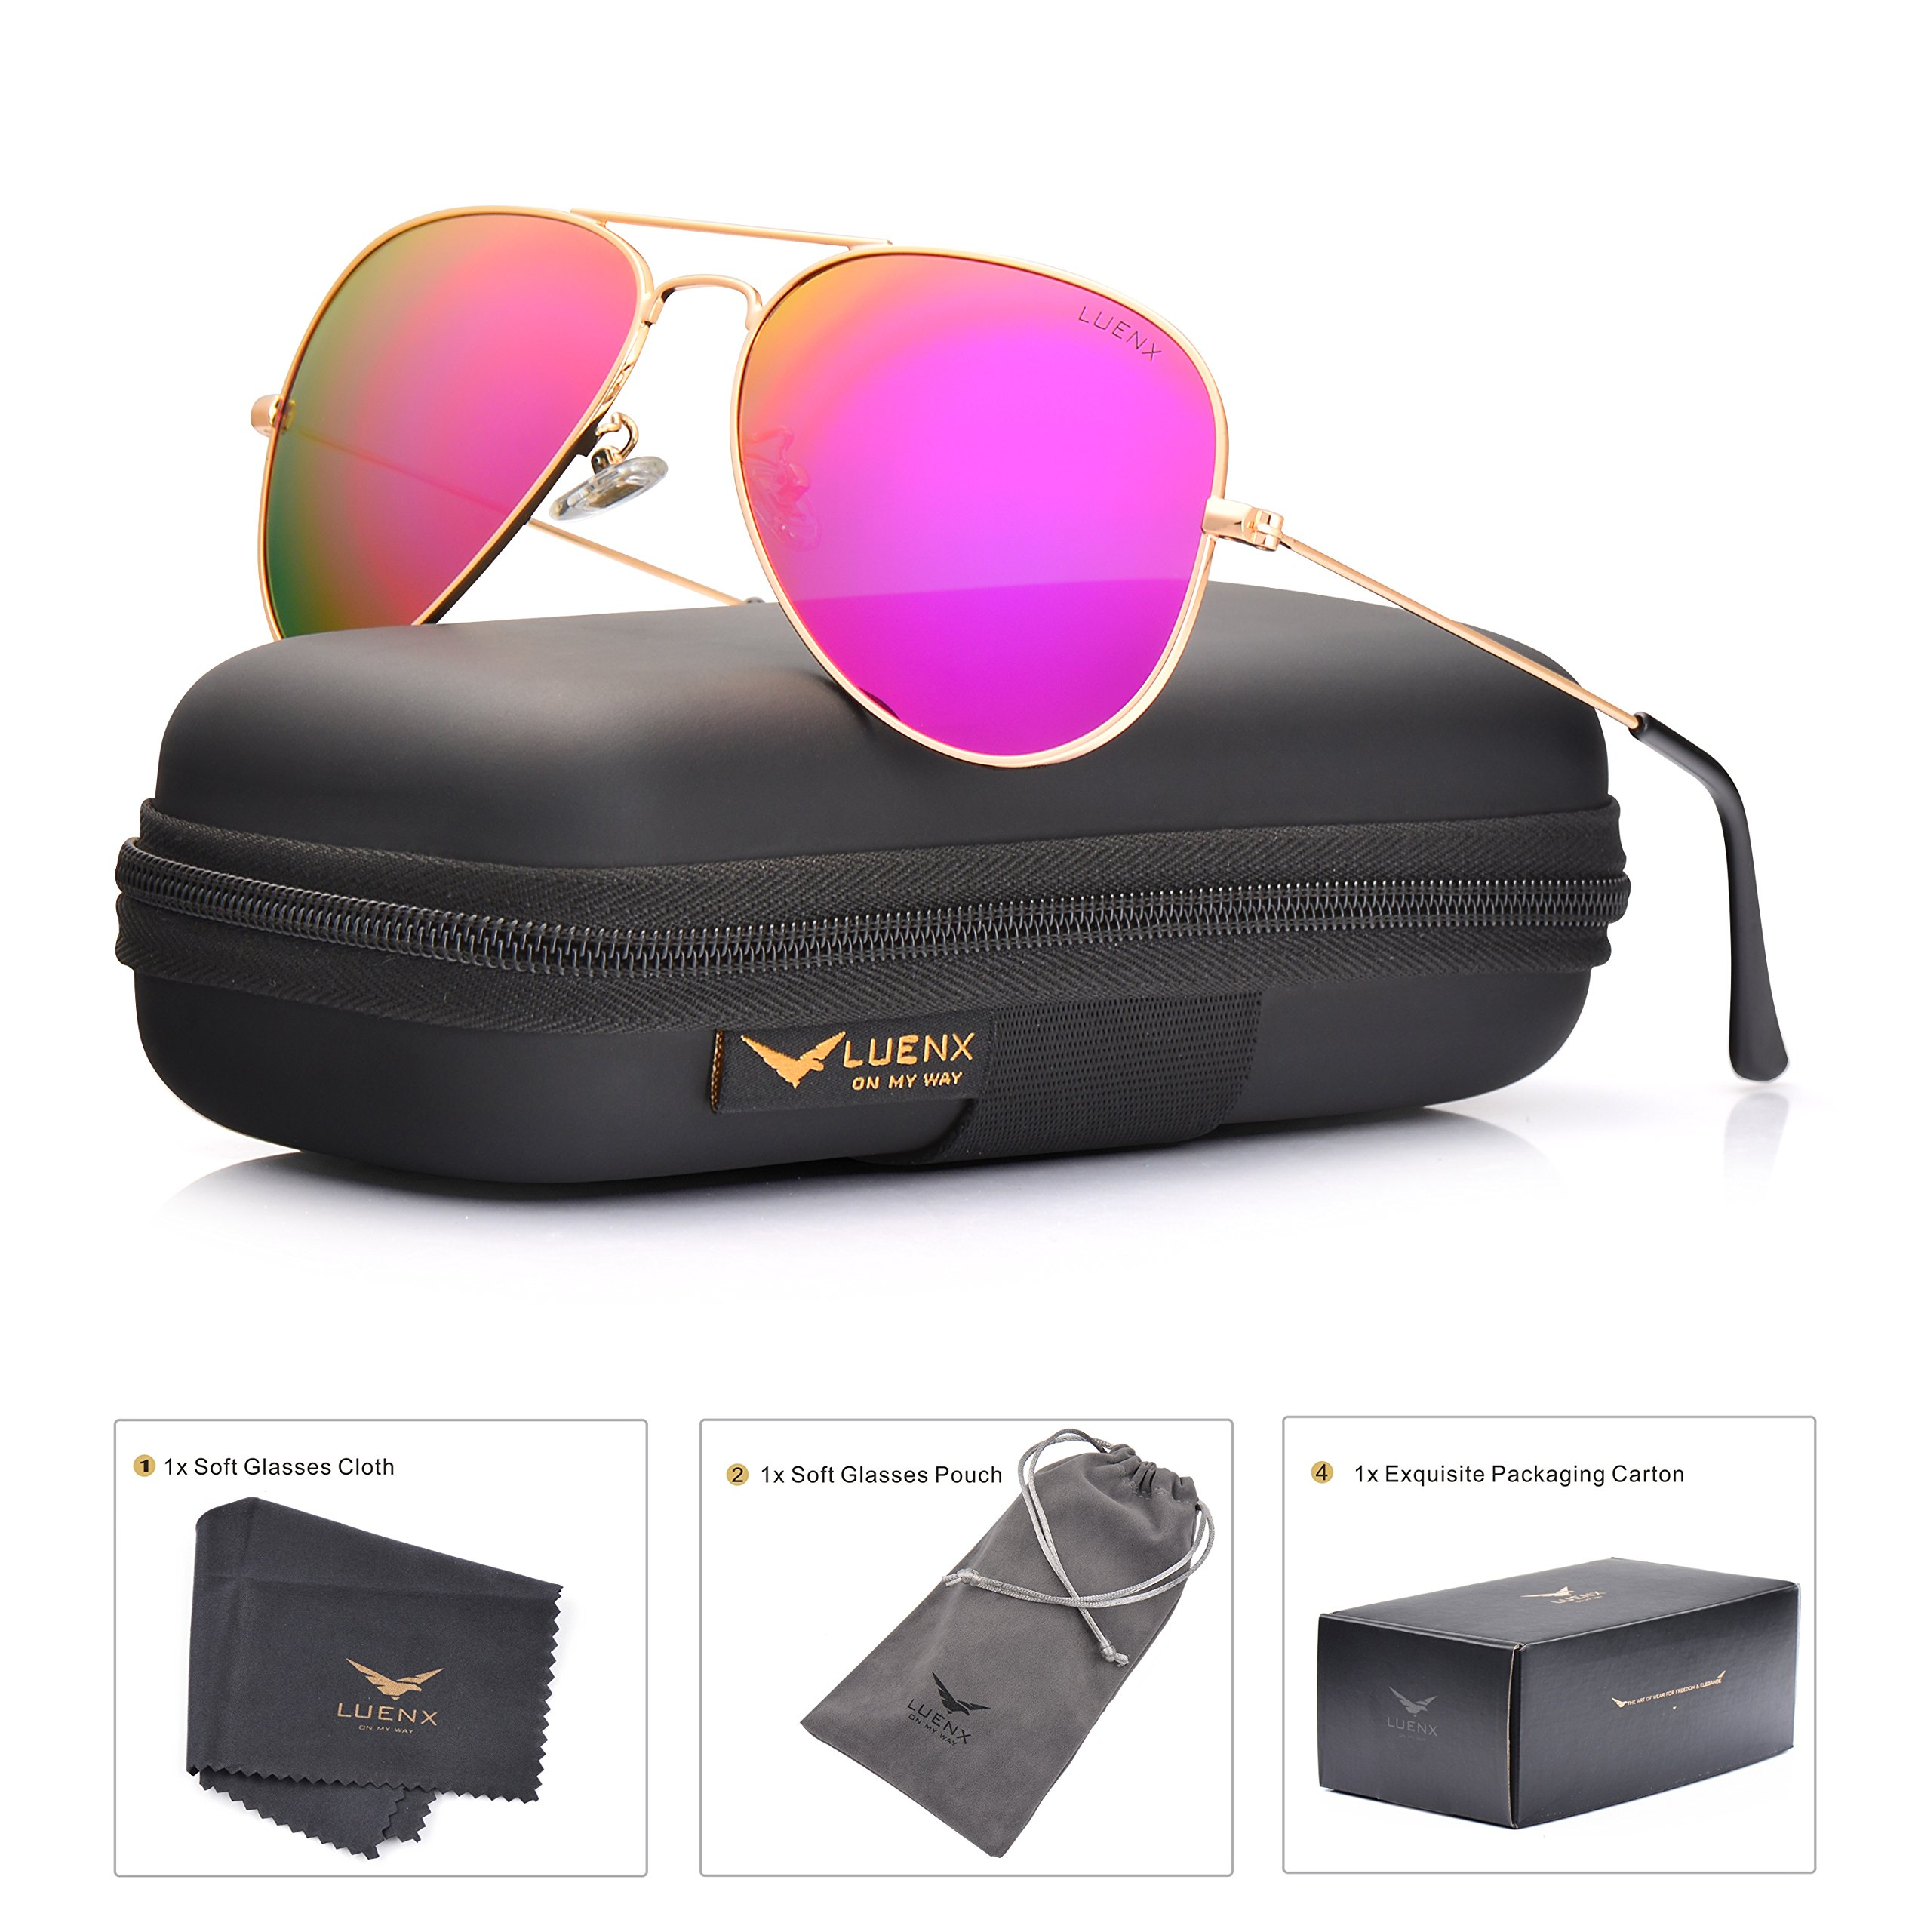 LUENX Womens Mens Aviator Sunglasses Polarized Mirrored Rose Red Lens Metal Frame with Case 60MM UV 400 Driving